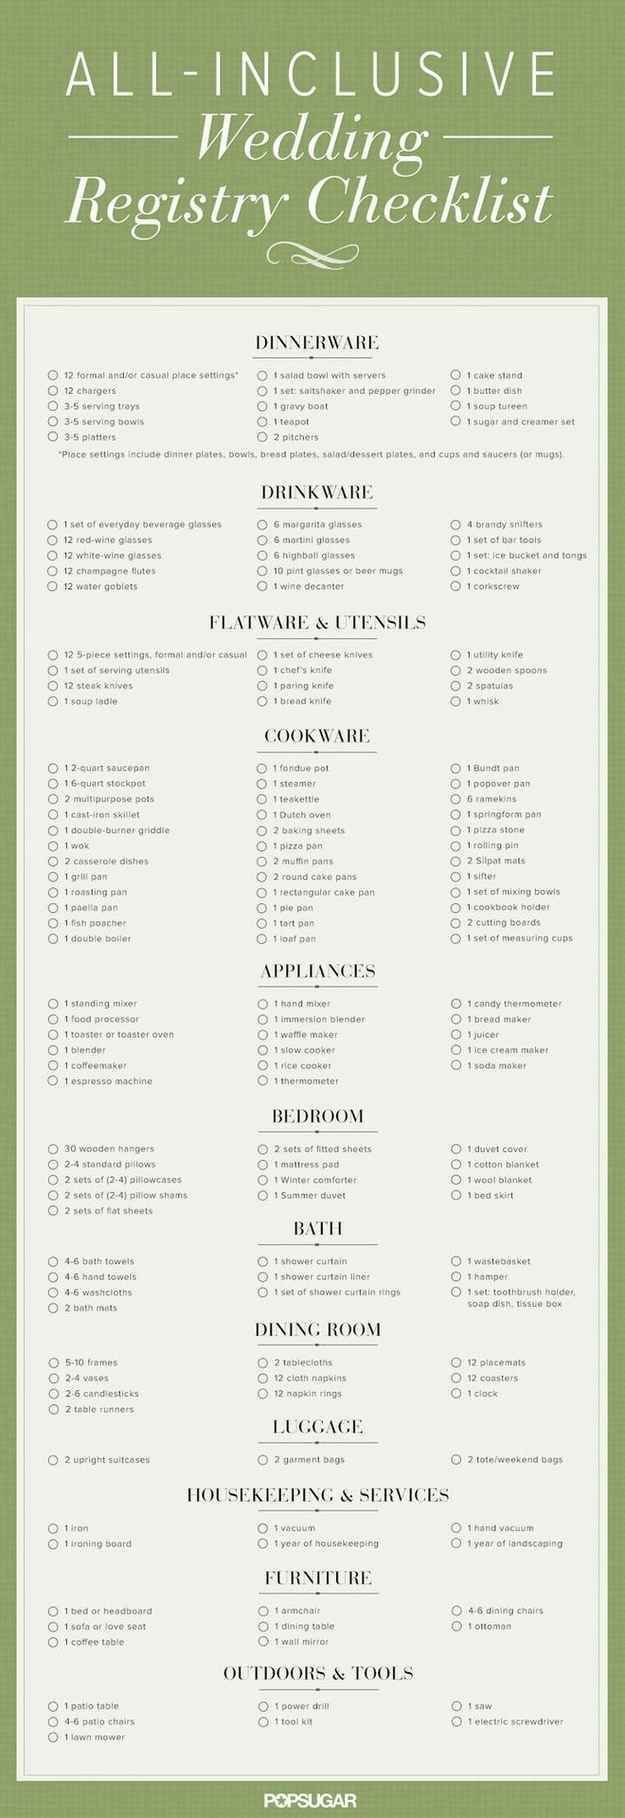 Make Sure You Use Your Registry To Get Everything You Need These Diagrams Are Everything You Need To Wedding Registry Checklist How To Plan Wedding Registry